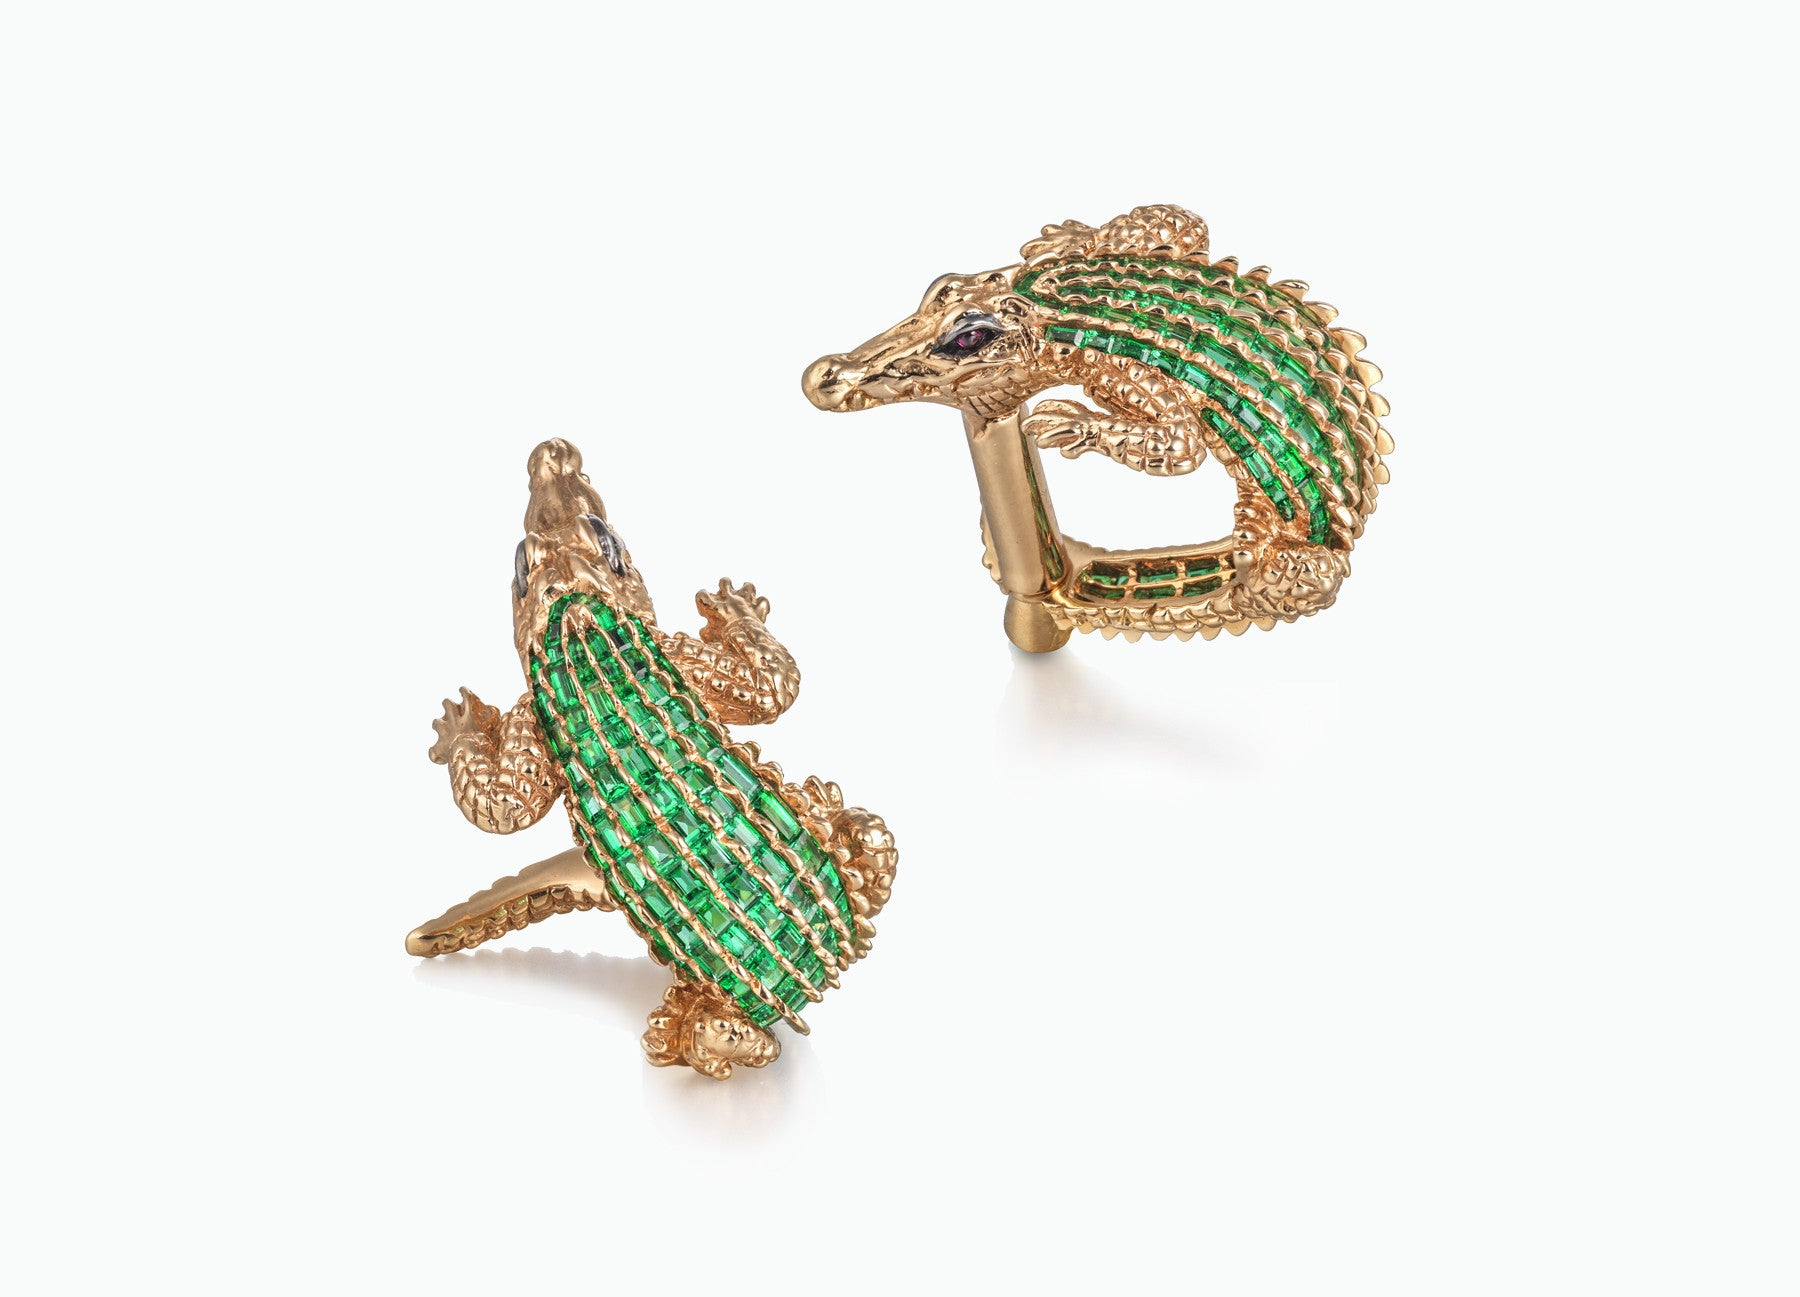 ONE OF A KIND CROCODILE CUFFLINKS IN 18k Yellow gold set with 4 carats of baguette cut emeralds and two rubies